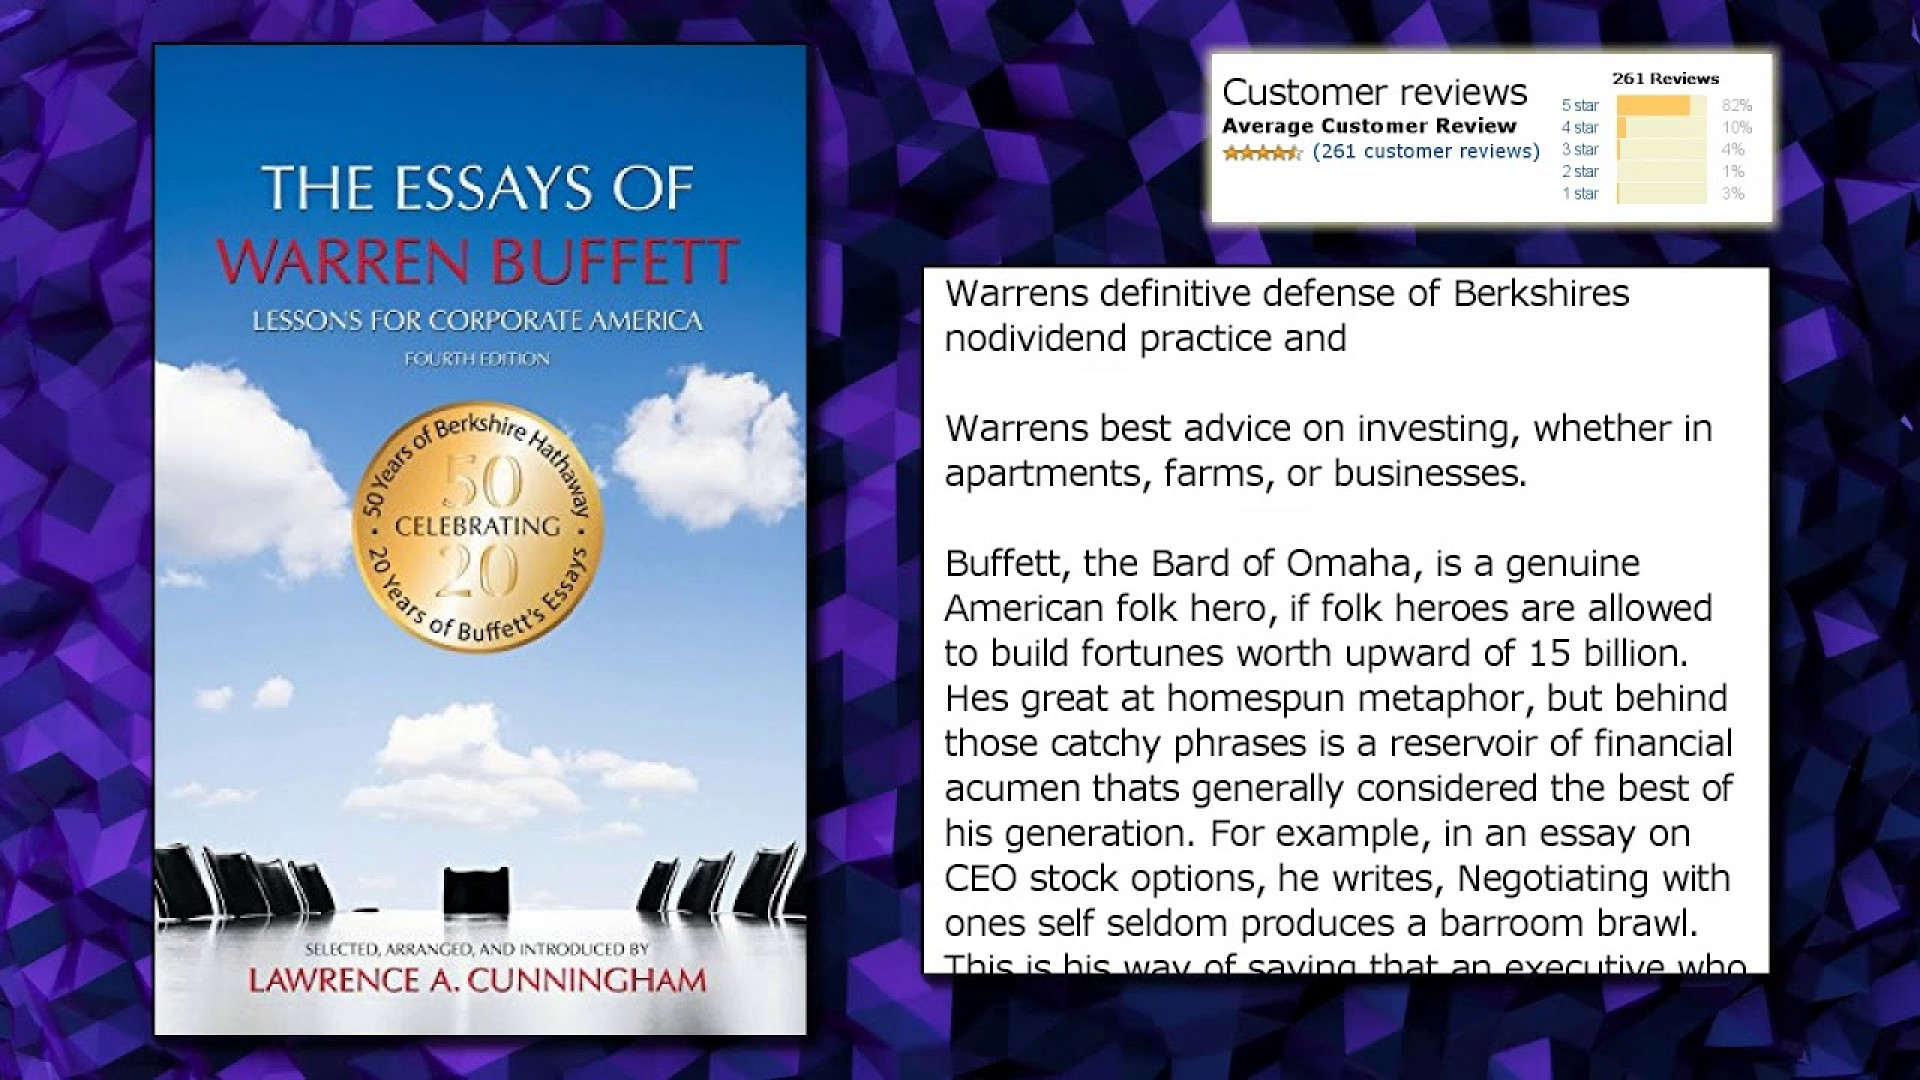 012 Essay Example Maxresdefault The Essays Of Warren Buffett Lessons For Corporate Remarkable America Third Edition 3rd Second Pdf Audio Book 1920